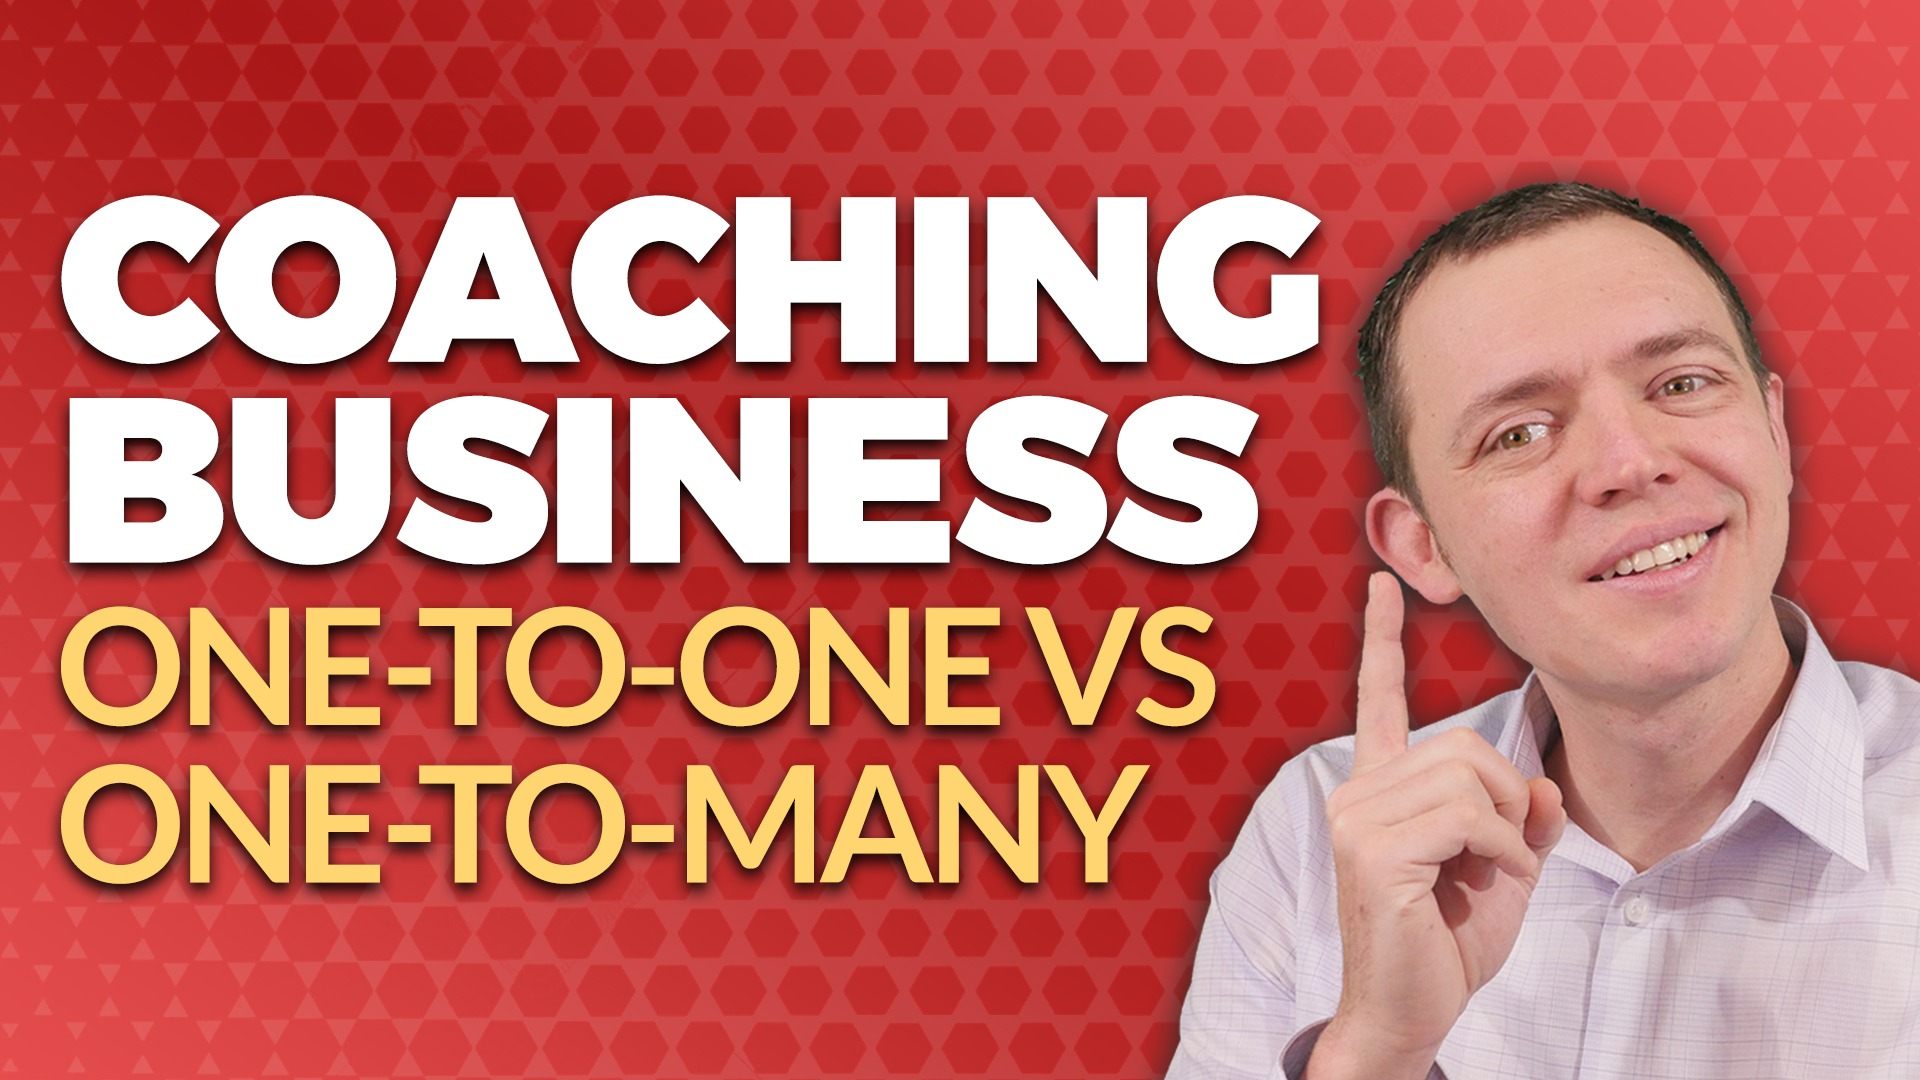 How to Transition from a One-to-One to a One-to-Many in Your Coaching Business